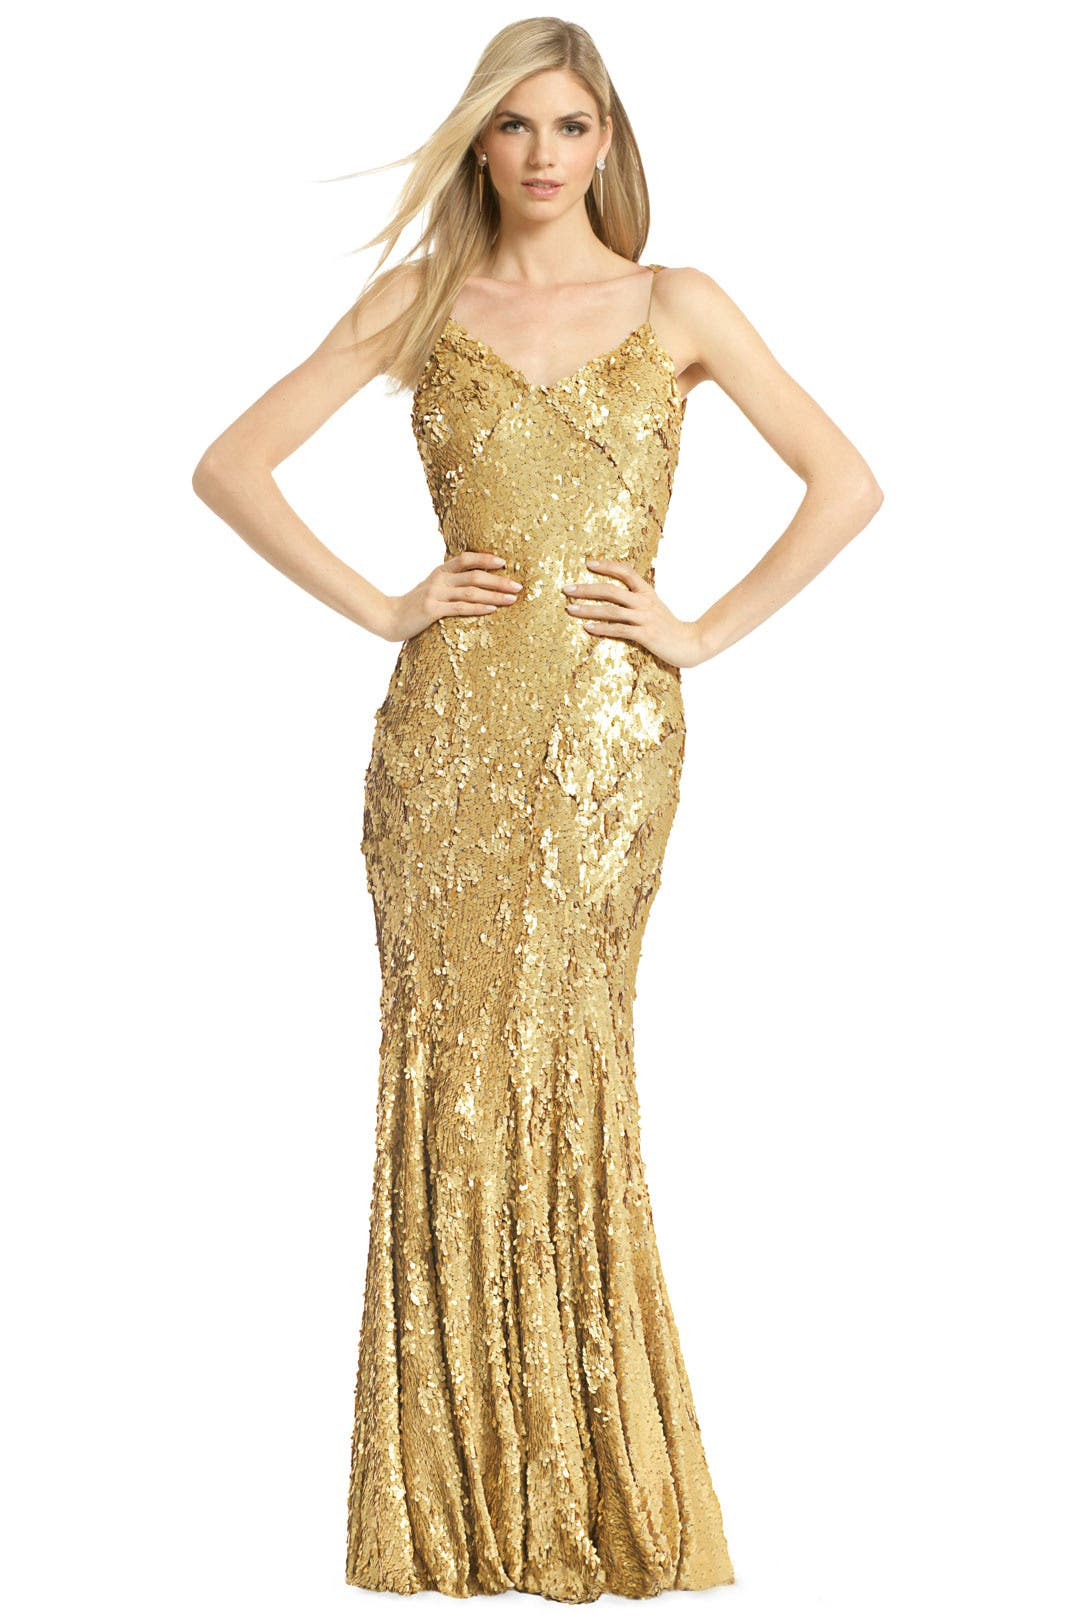 As Good as Gold Gown by ZAC Zac Posen